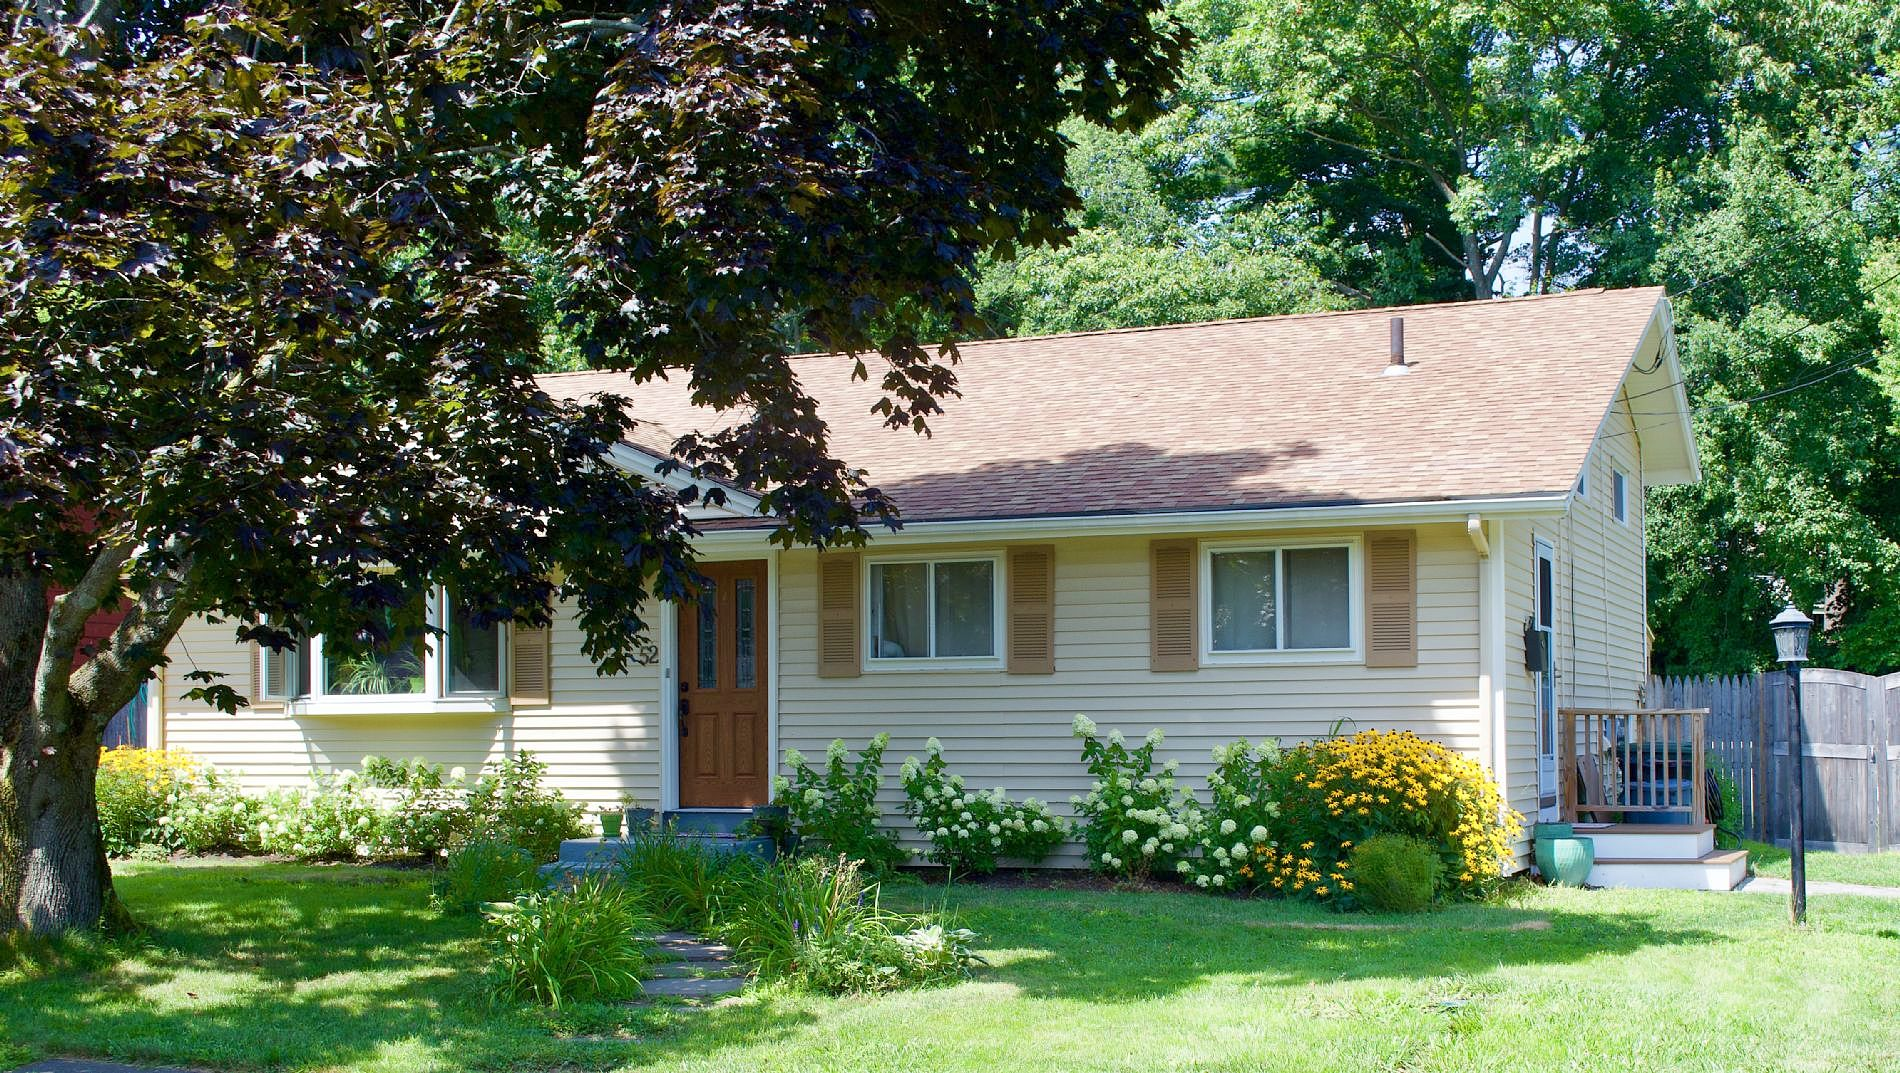 3 Bedrooms / 1.5 Bathrooms - Est. $3,168.00 / Month* for rent in Beverly, MA